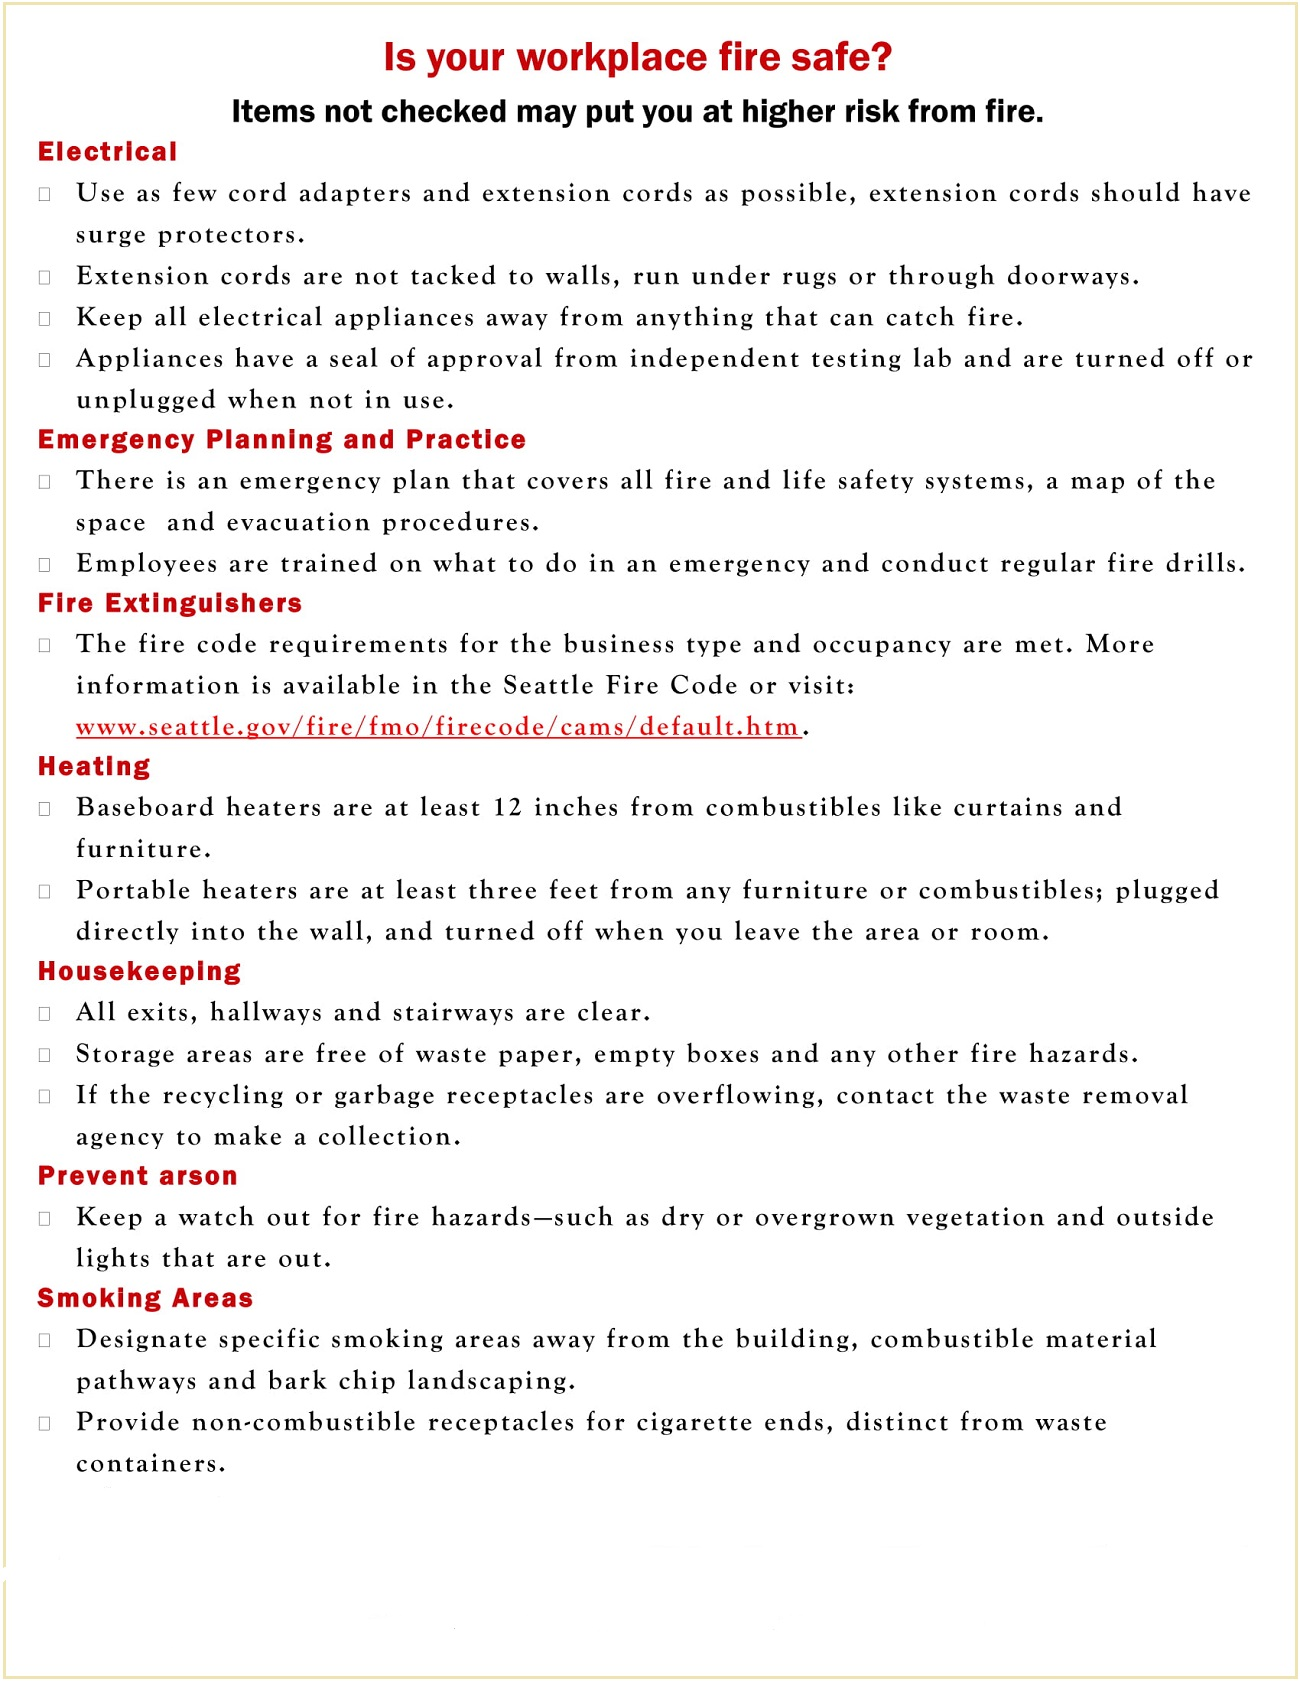 Workplace Fire Safety Checklist Template PDF